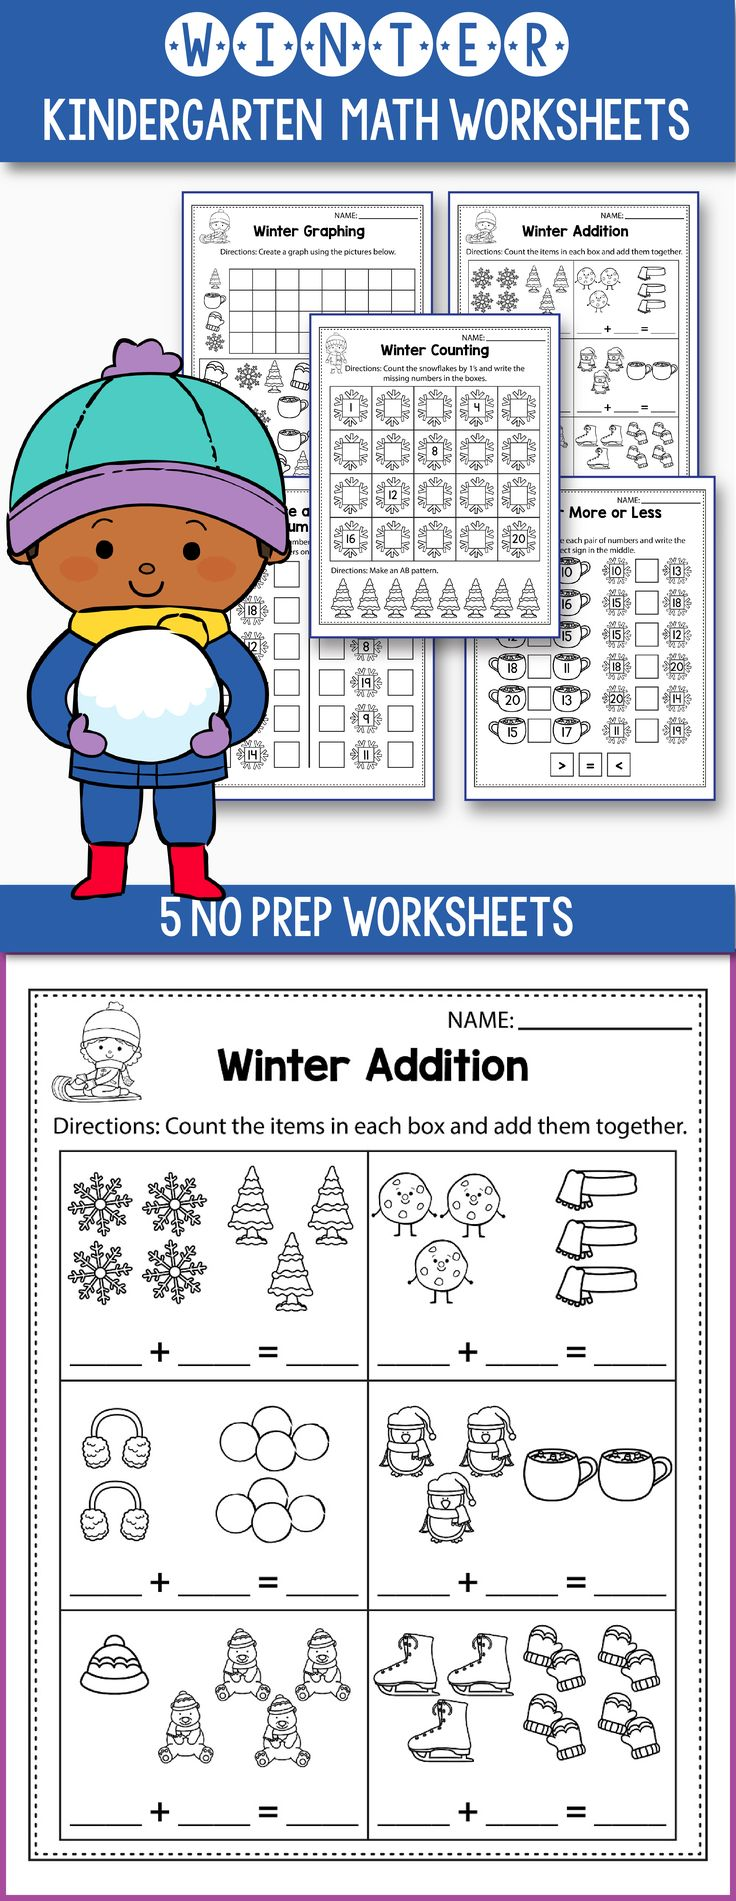 Free Winter math worksheets for kindergarten - includes some fun winter games for preschool, kindergarten or even first grade. Worksheets included: count the objects, same or different, make a pattern, comparing numbers, ten frames,skip counting, addition games, tally marks and more. #kindergarten #worksheet #free #math #prek  #prekactivities #1stgrade #primarymath